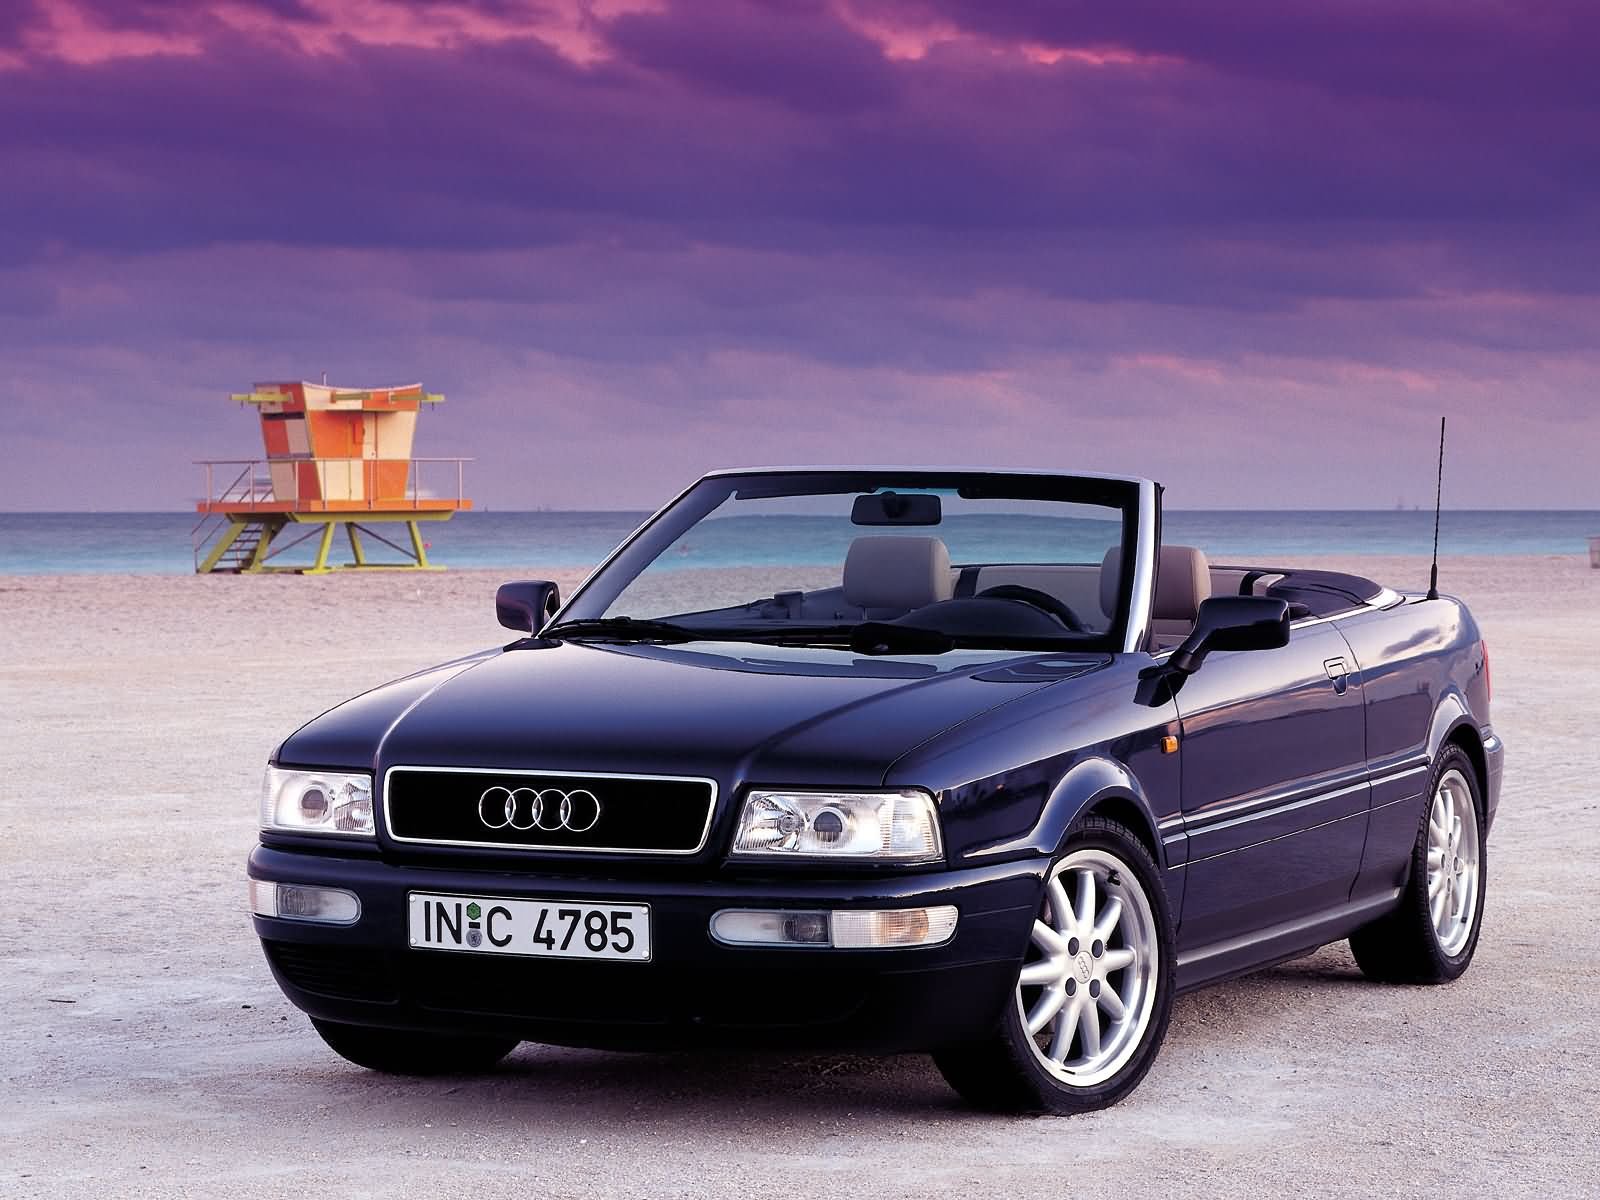 audi models audi tuning audi history audi a4 cabriolet. Black Bedroom Furniture Sets. Home Design Ideas